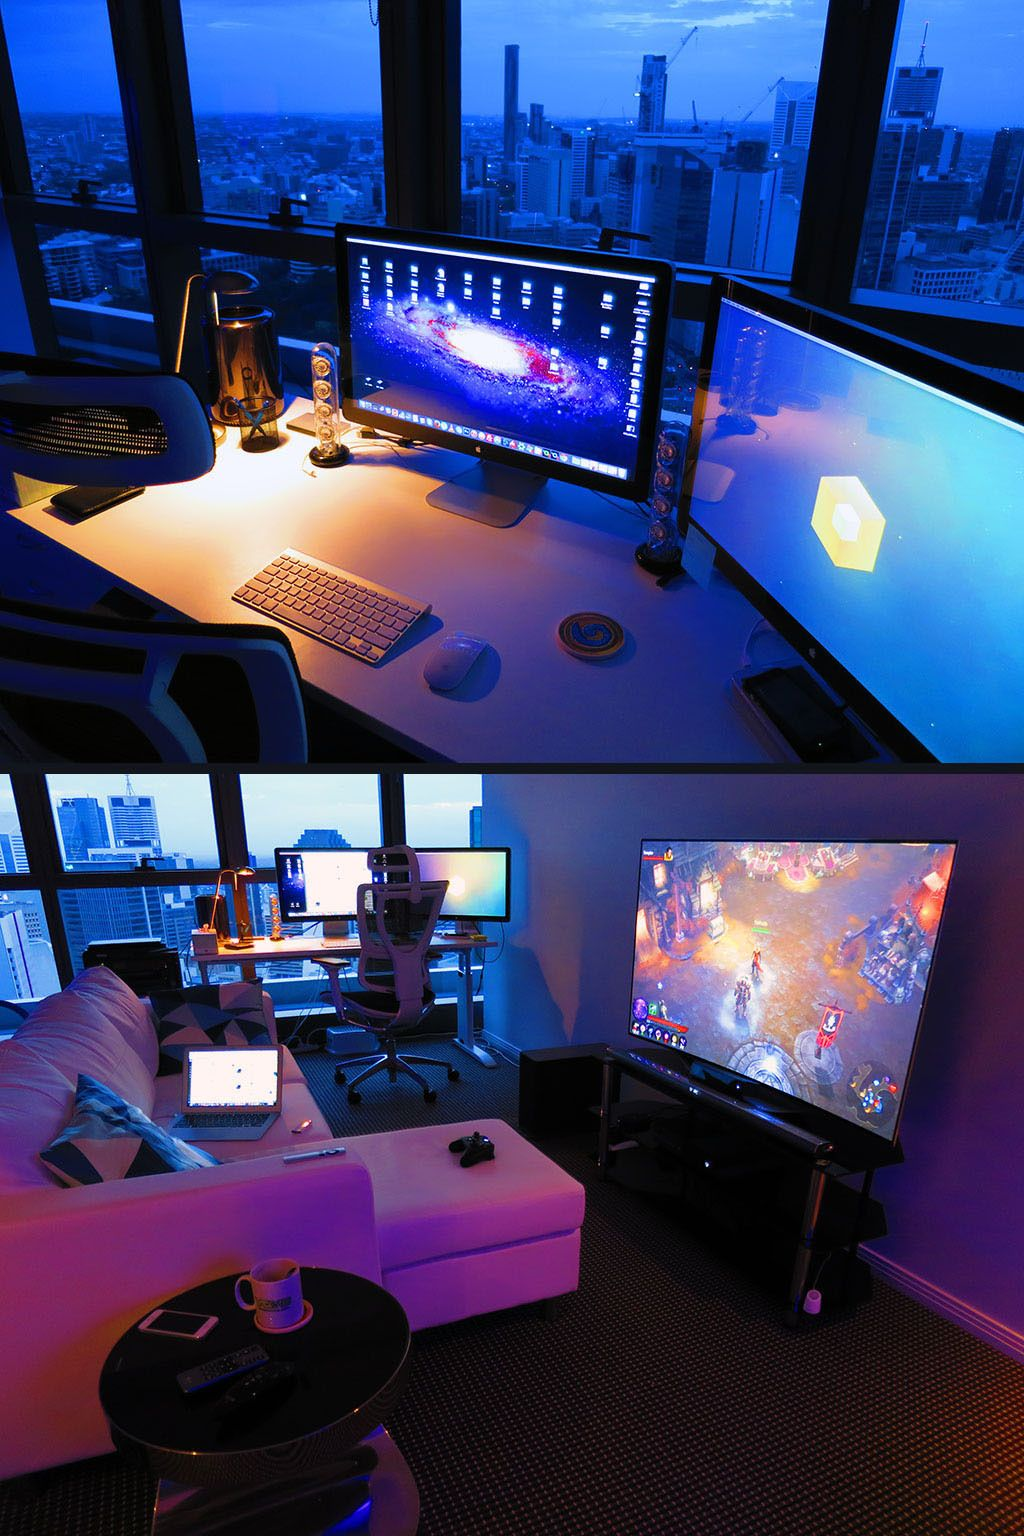 Design Your Room Game: Battlestations — Submit Your Own